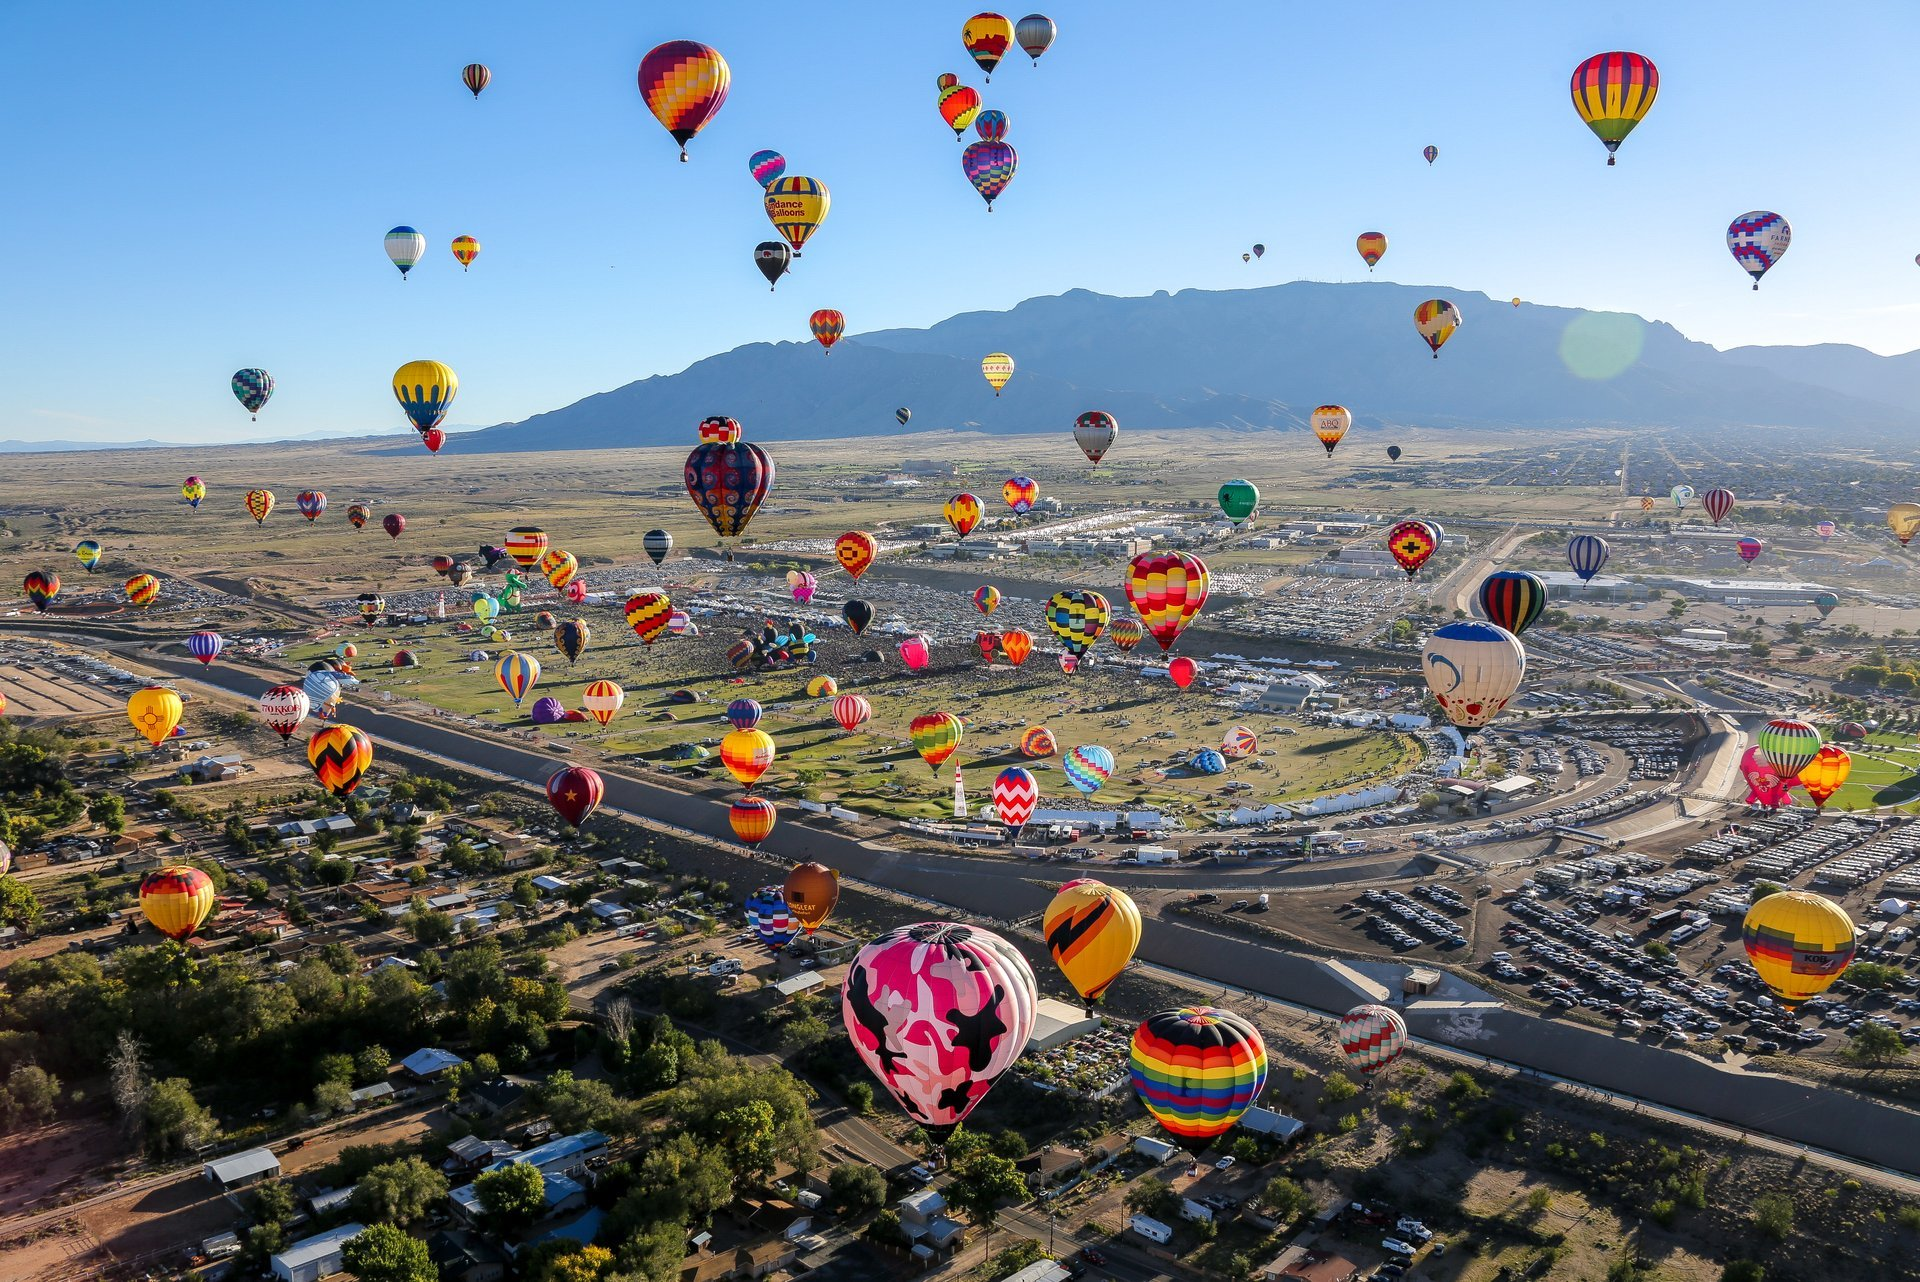 Balloon Festival 2020 Nj.Albuquerque International Balloon Fiesta 2020 In New Mexico